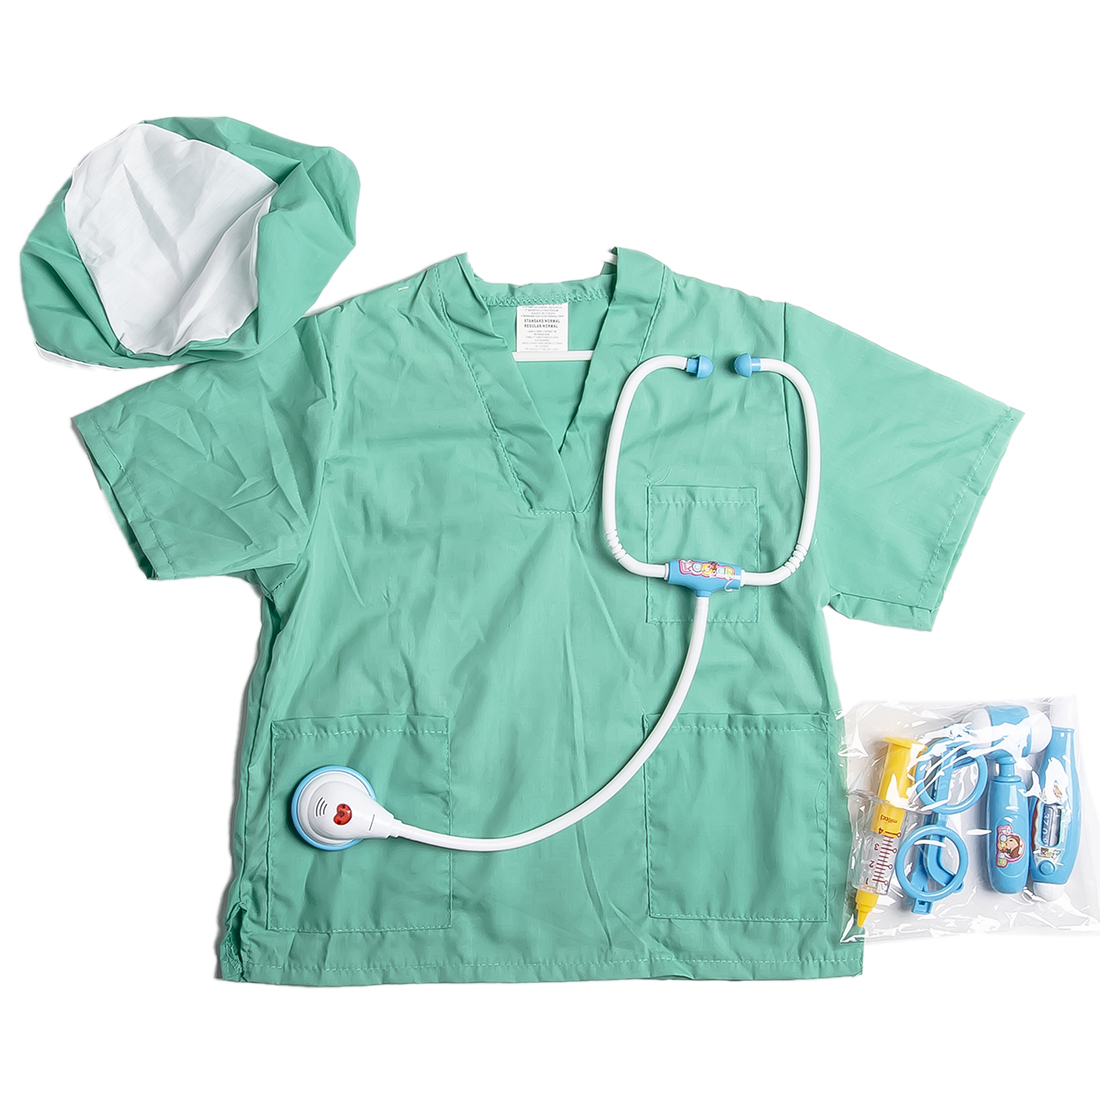 Doctor Nurse Clothes Play Costume Professional Doctor Assembly Decoration Doctor Play Props Children Play House Toy Role PlayDoctor Nurse Clothes Play Costume Professional Doctor Assembly Decoration Doctor Play Props Children Play House Toy Role Play